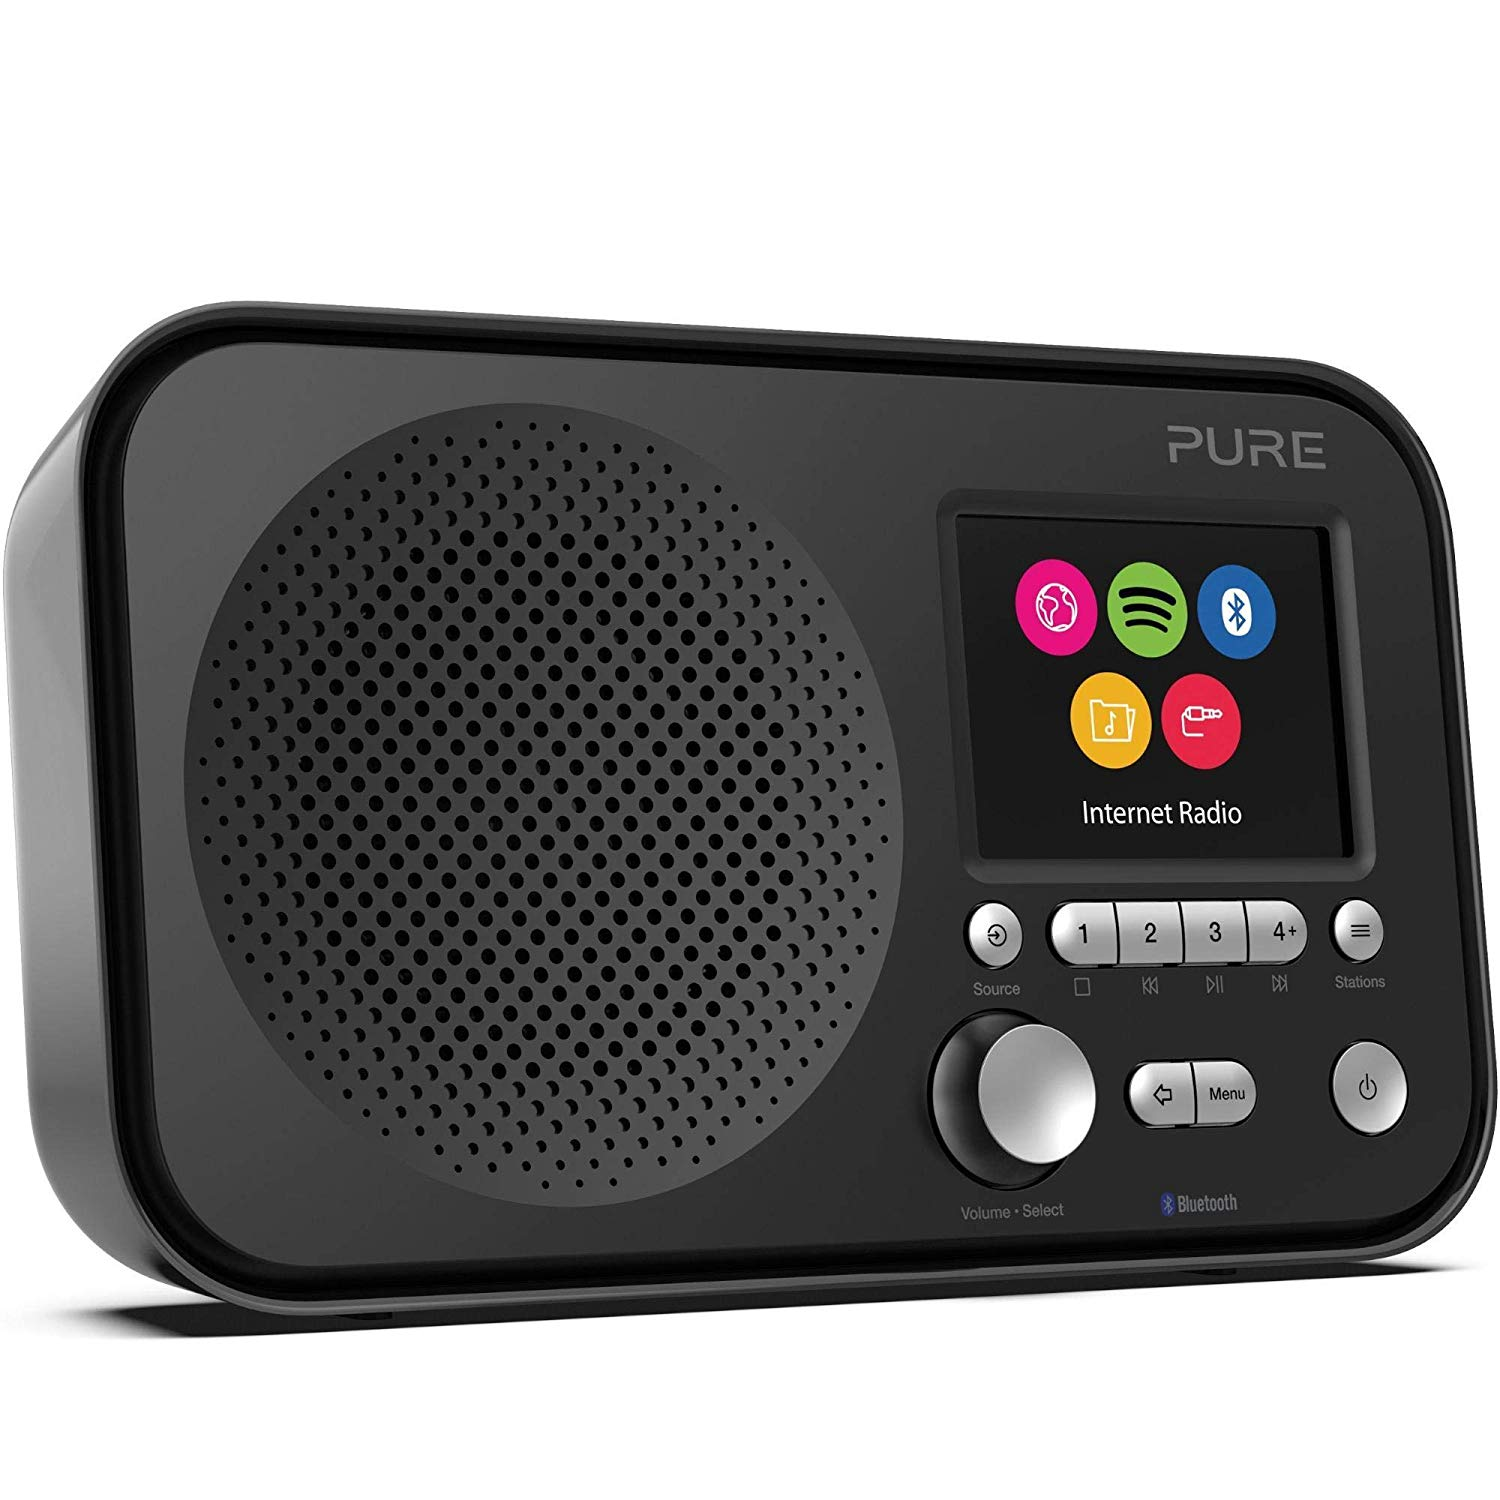 Pure Elan Ir5 Internet Radio Review Droidhorizon